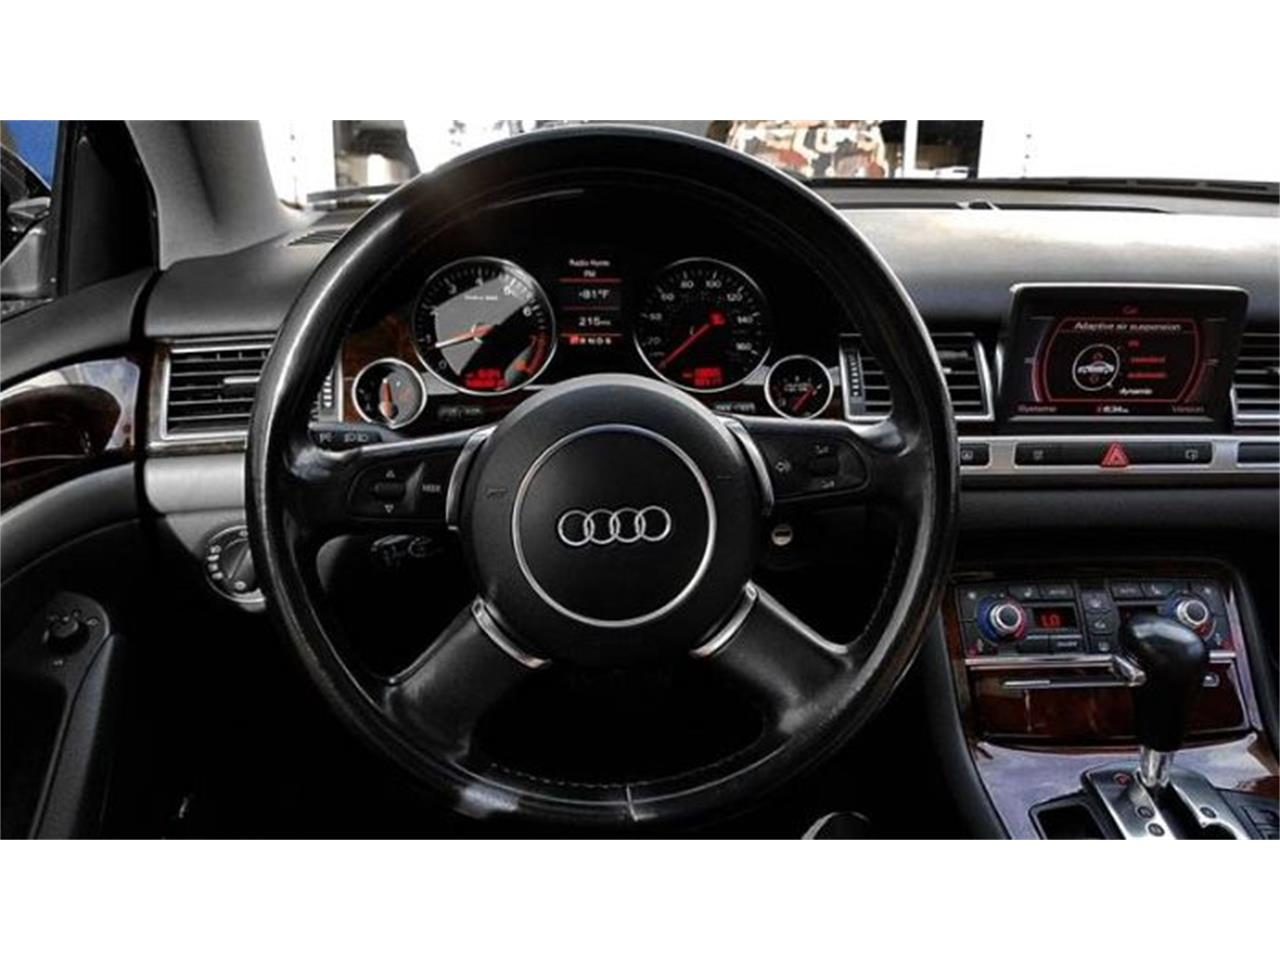 Large Picture of '05 A8 located in Michigan - $14,995.00 - O4UQ